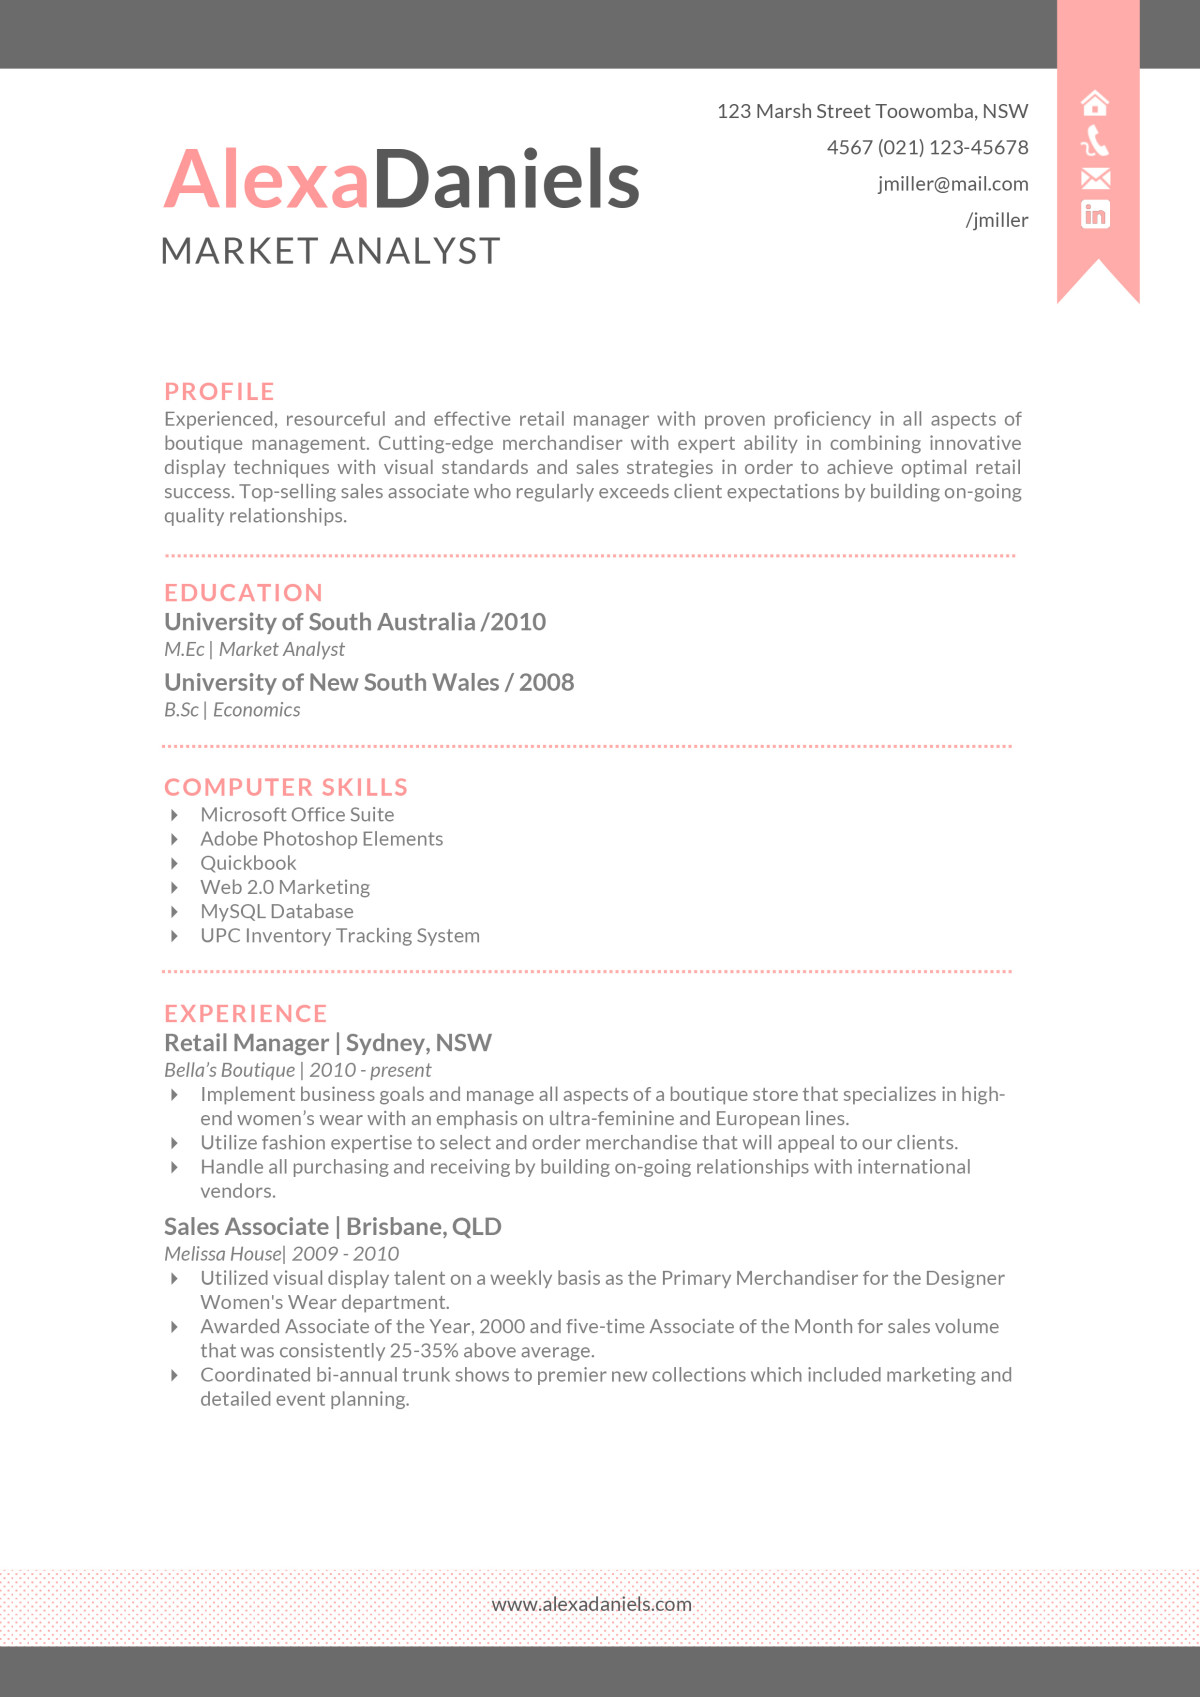 resume templates to stand out